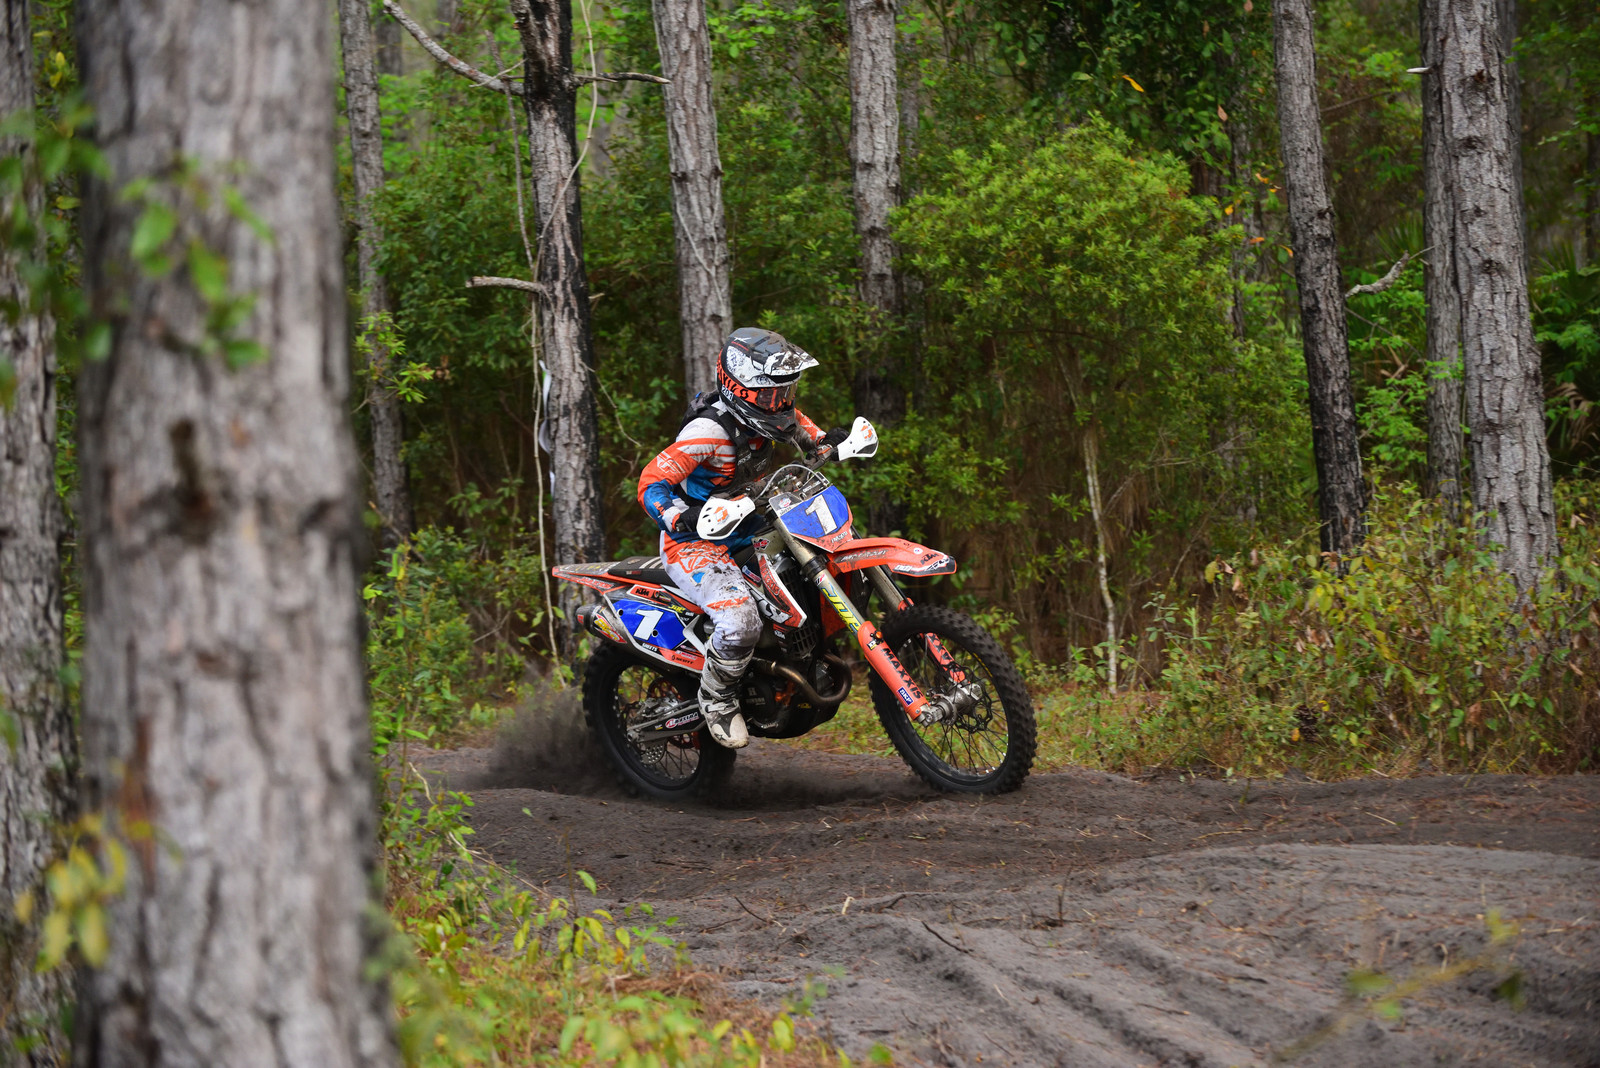 Becca Sheets - Wild Boar GNCC - Motocross Pictures - Vital MX